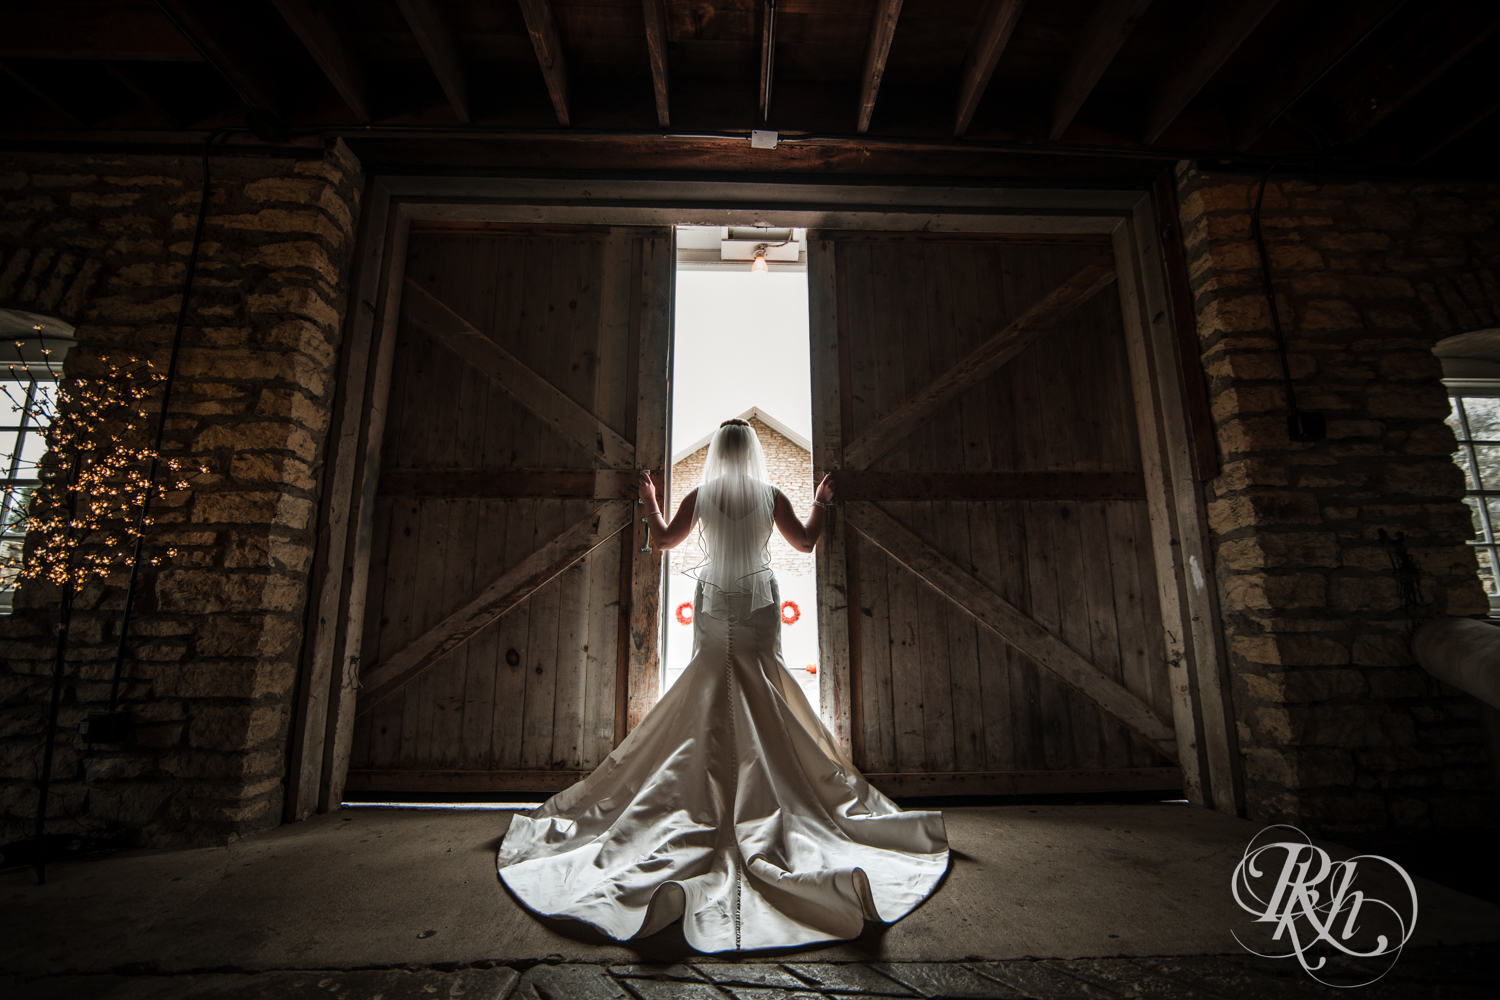 Amanda & Luke - Minnesota Wedding Photography - Mayowood Stone Barn - Rochester - RKH Images - Blog (38 of 67).jpg